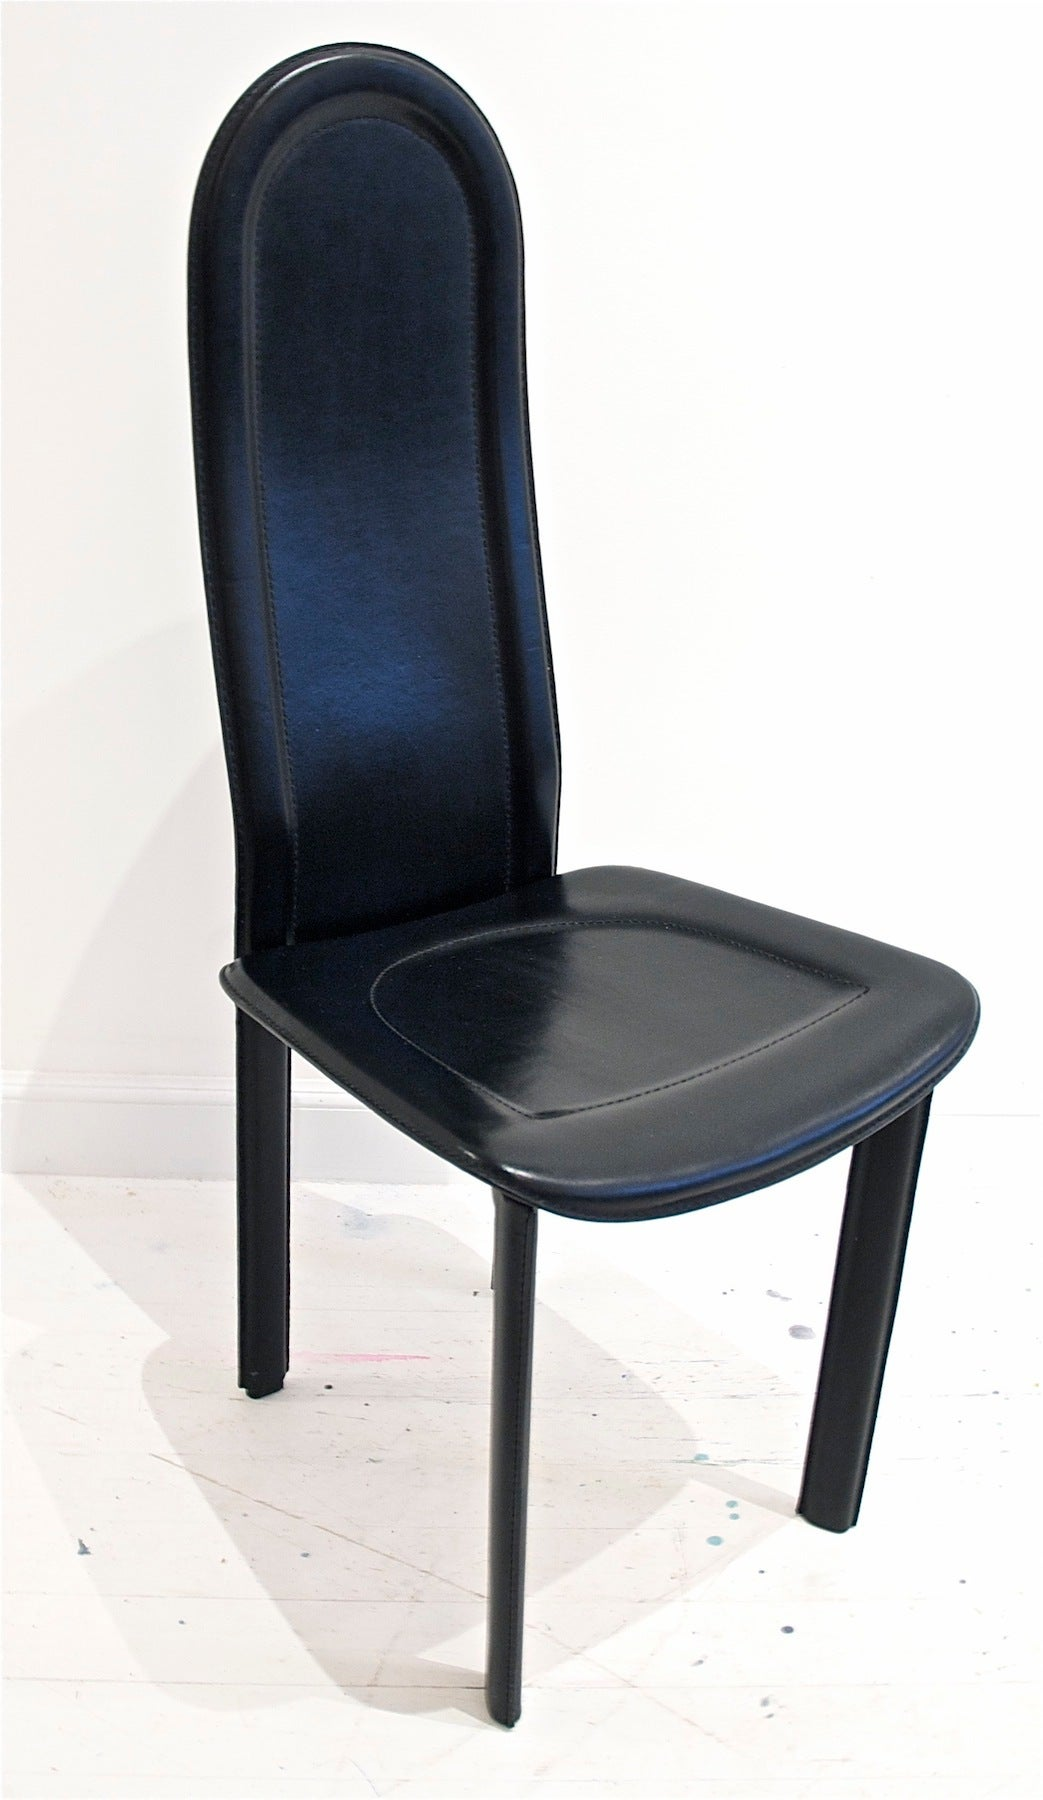 Black Leather Dining Chairs by Artedi UK For Sale at 1stdibs : ARTEDI9 1 from www.1stdibs.com size 1043 x 1800 jpeg 153kB